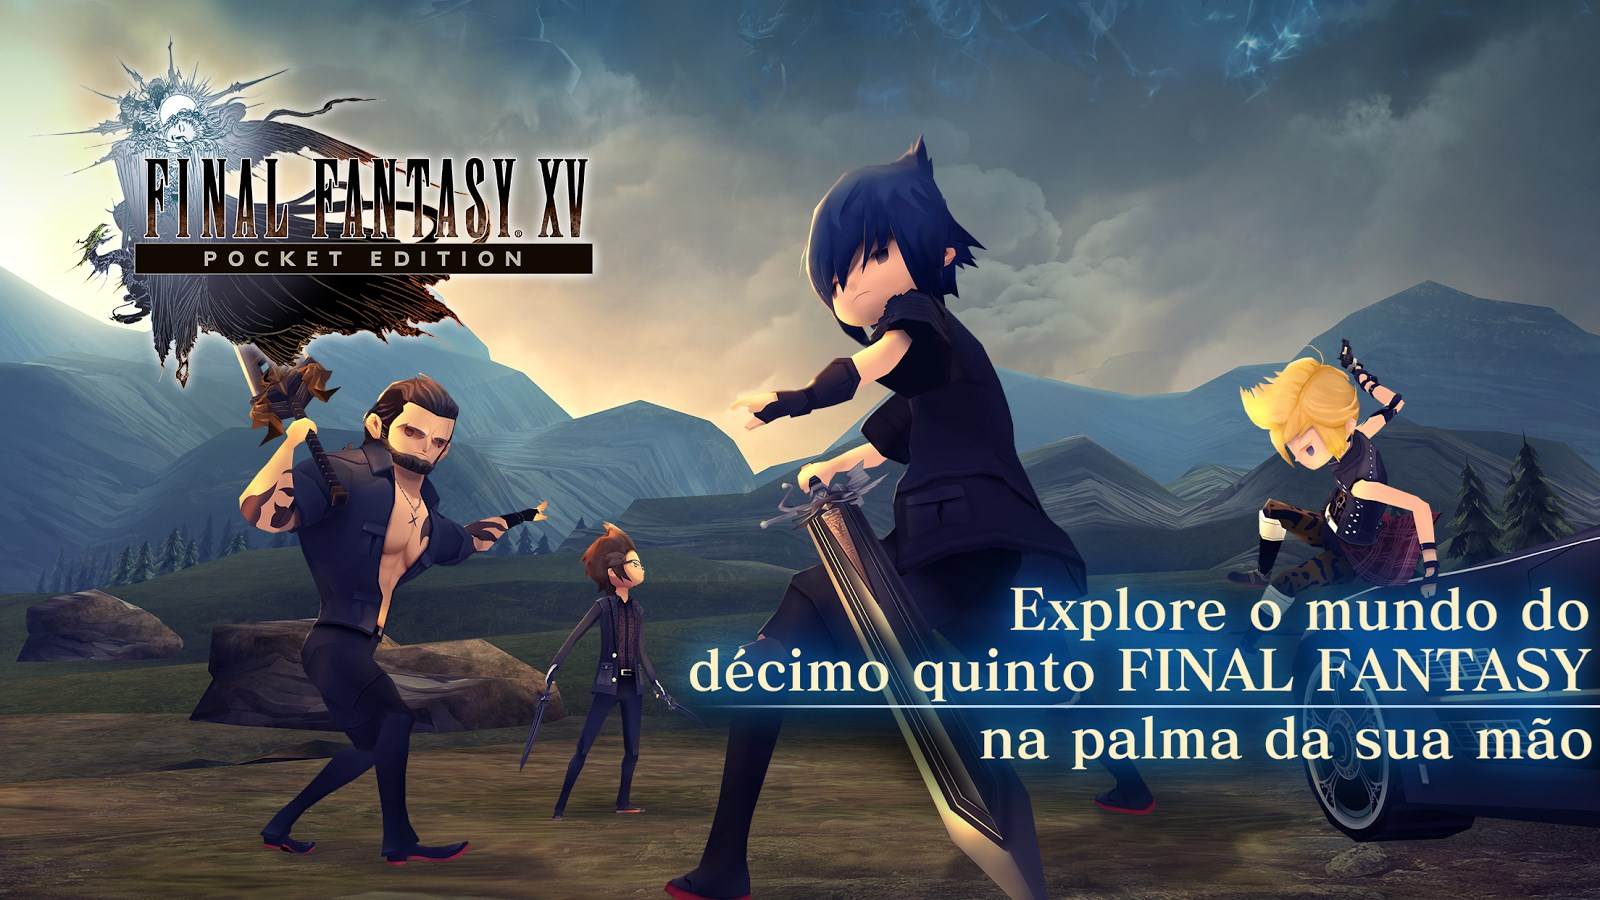 FINAL FANTASY XV POCKET EDITION - Imagem 1 do software